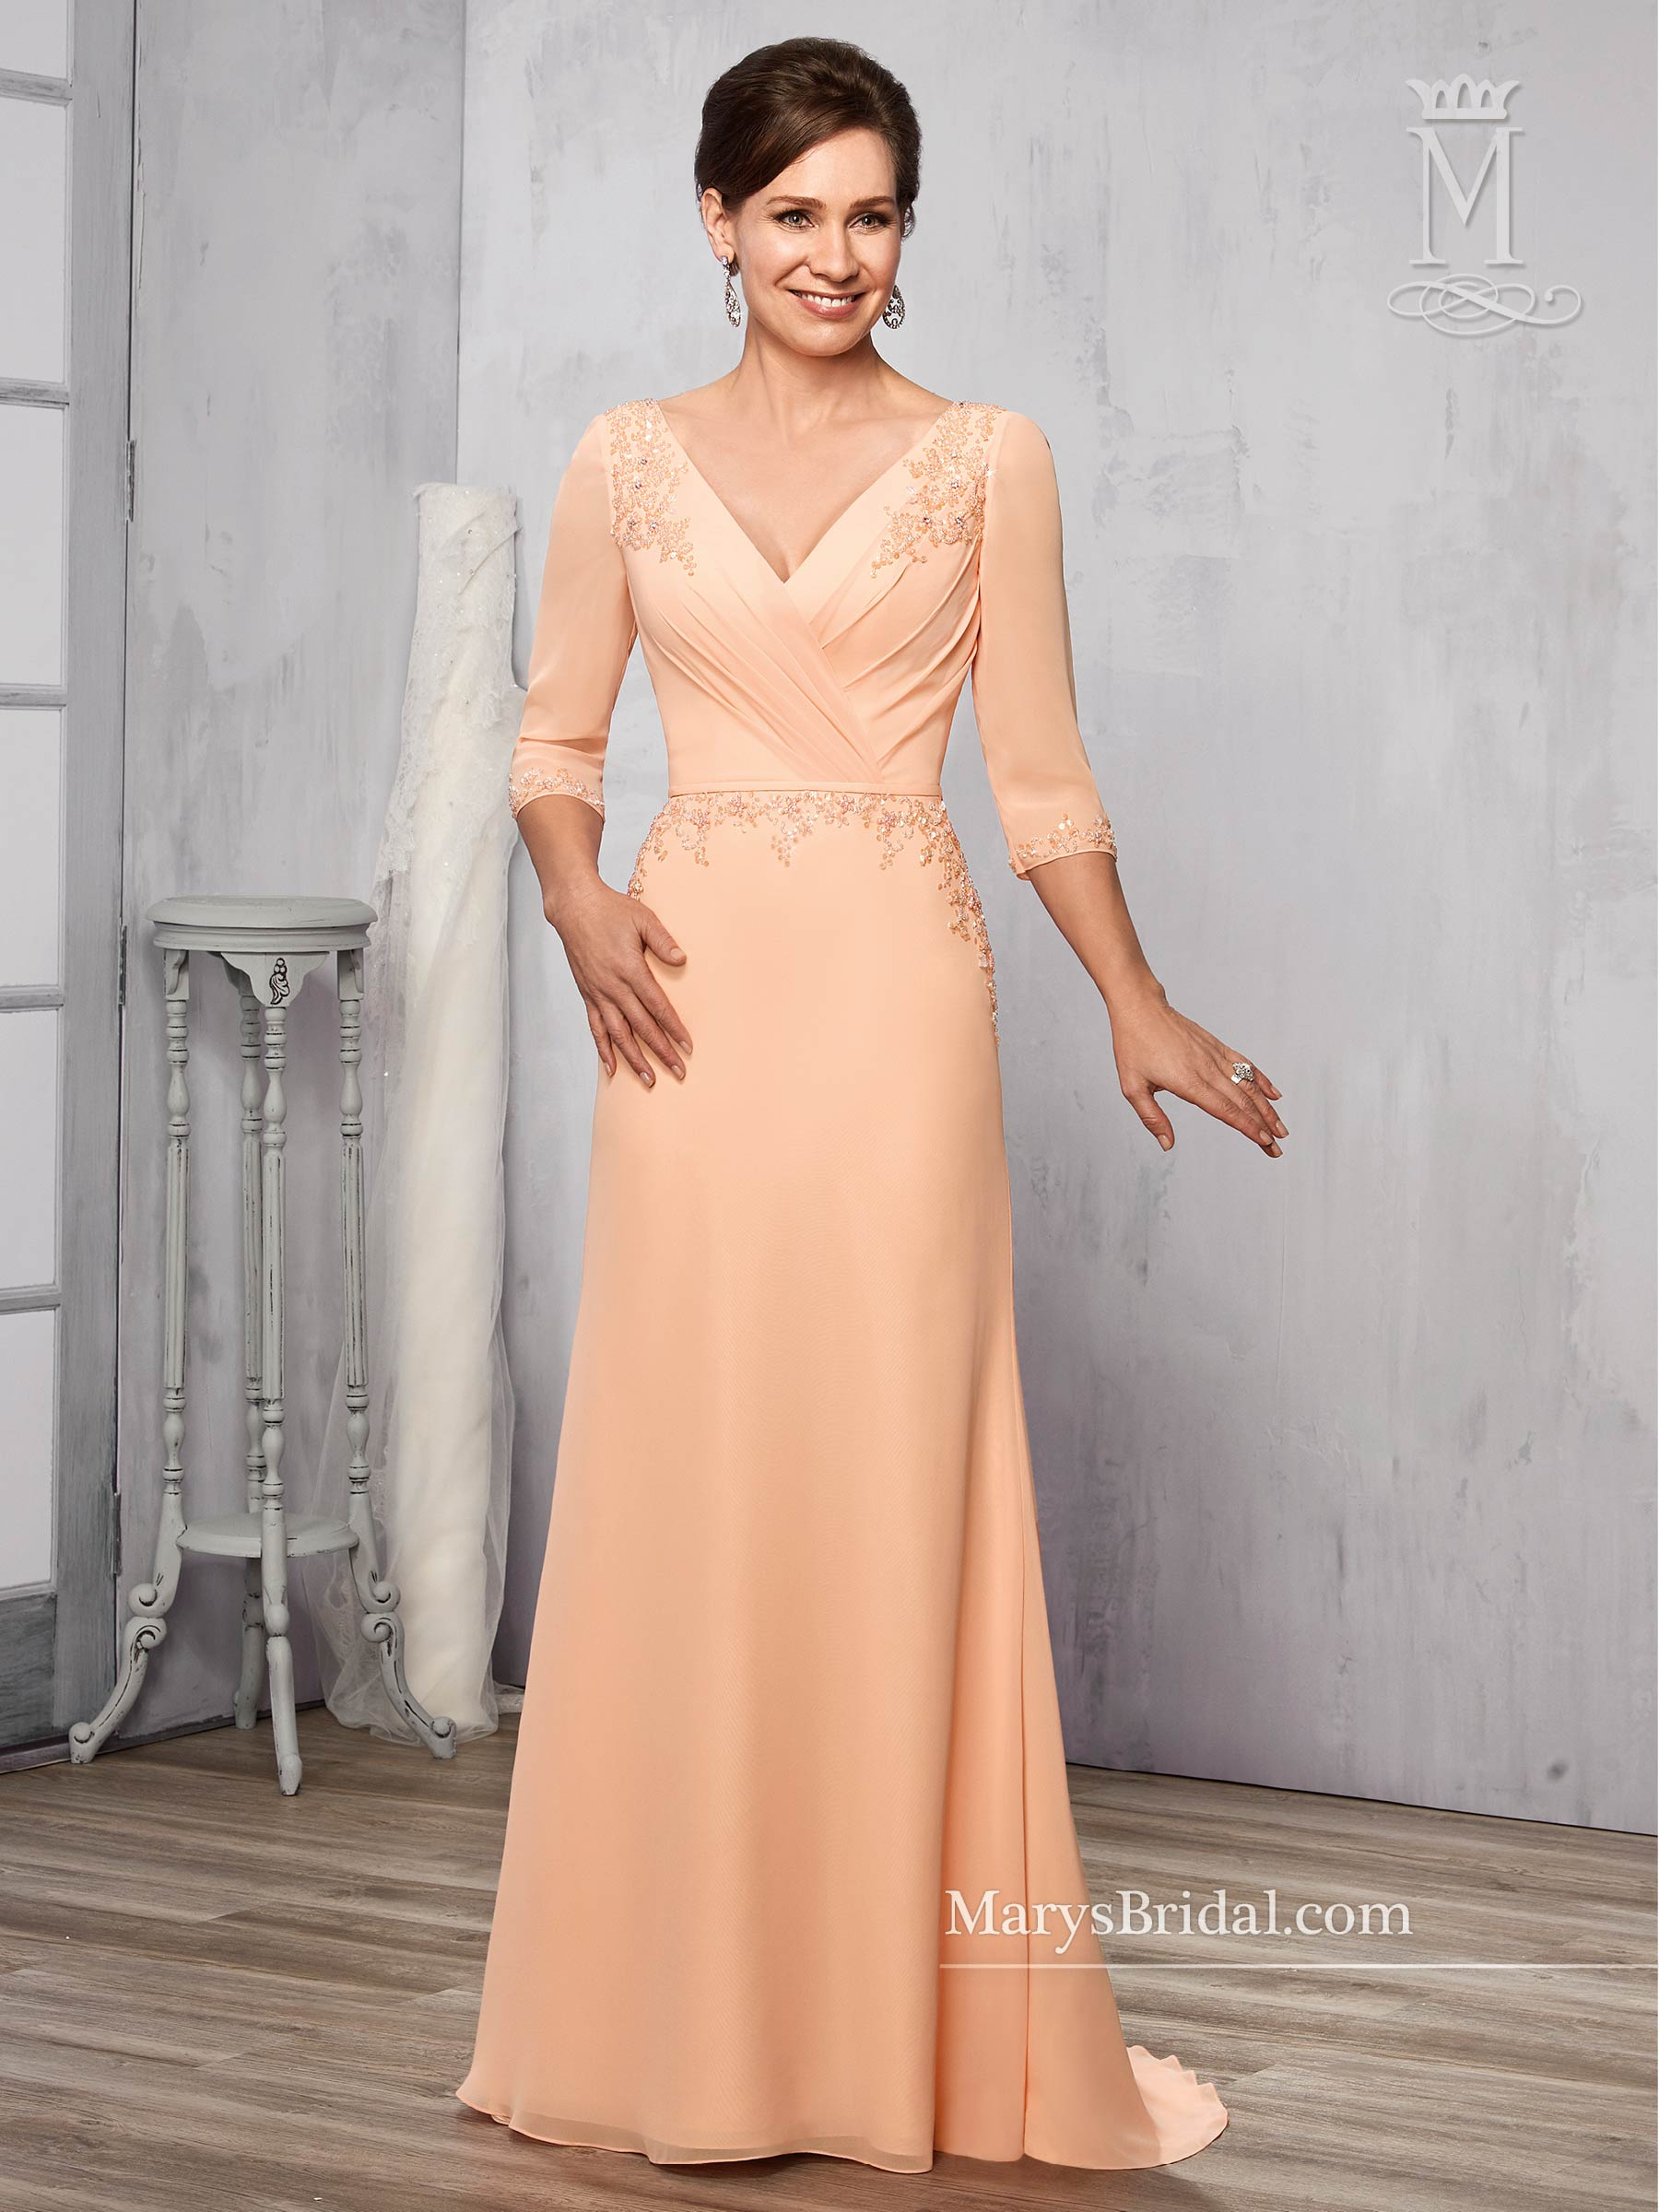 Mother Of The Bride Dresses Beautiful Mothers Style M2784